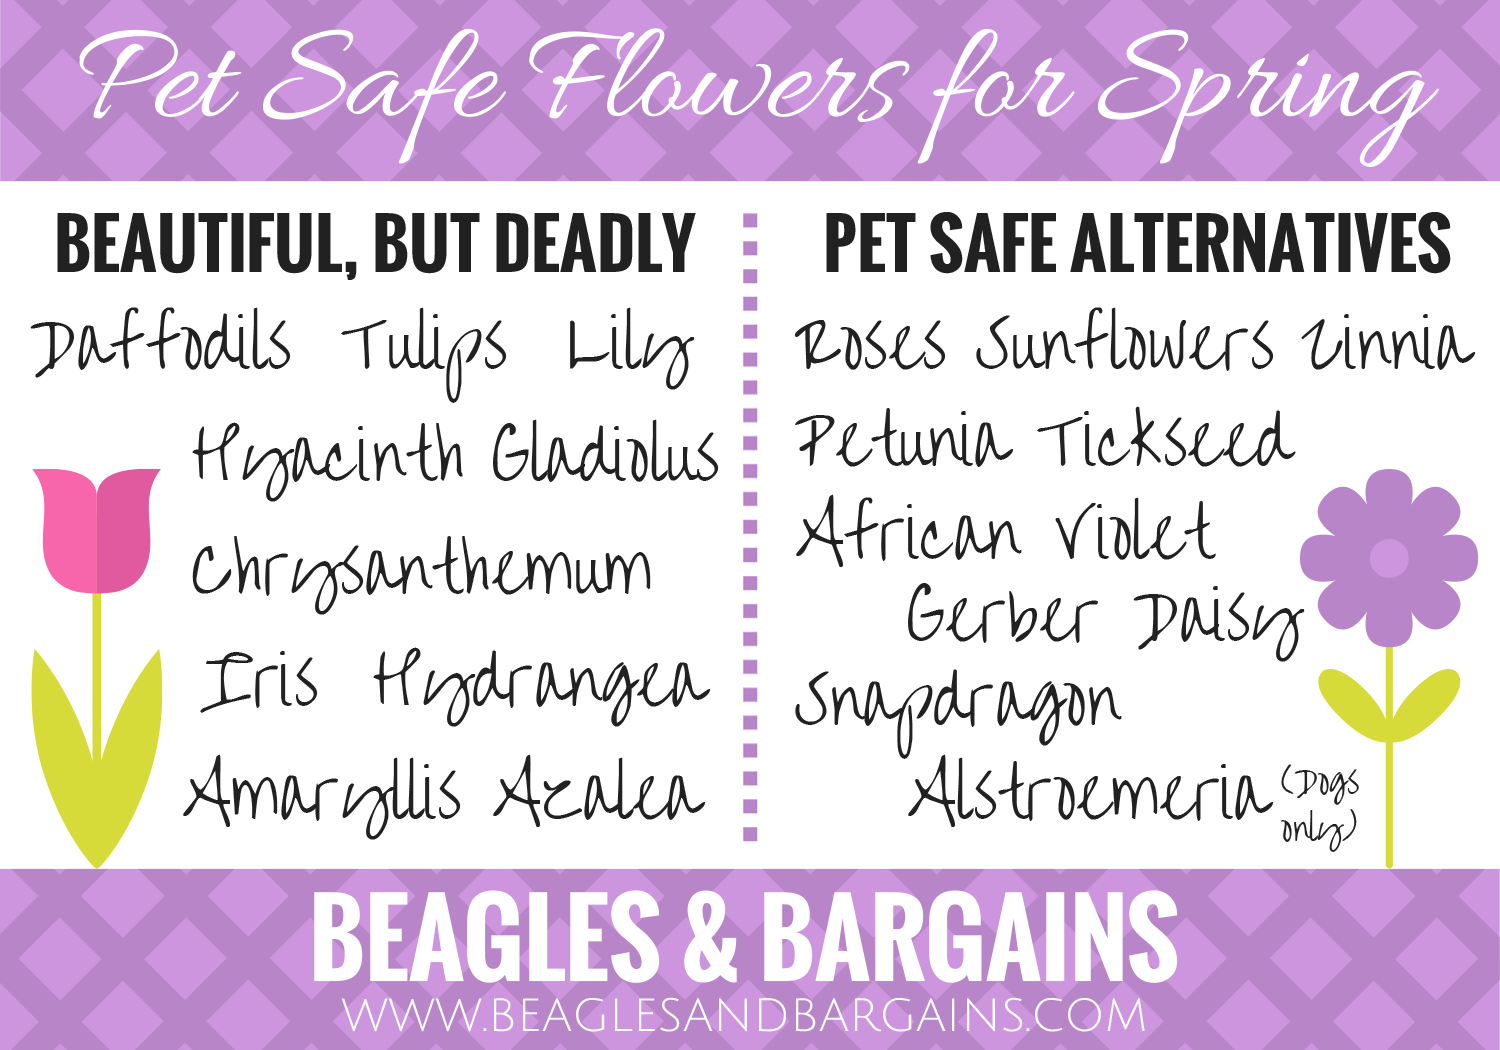 Pet Safe Flowers for Spring